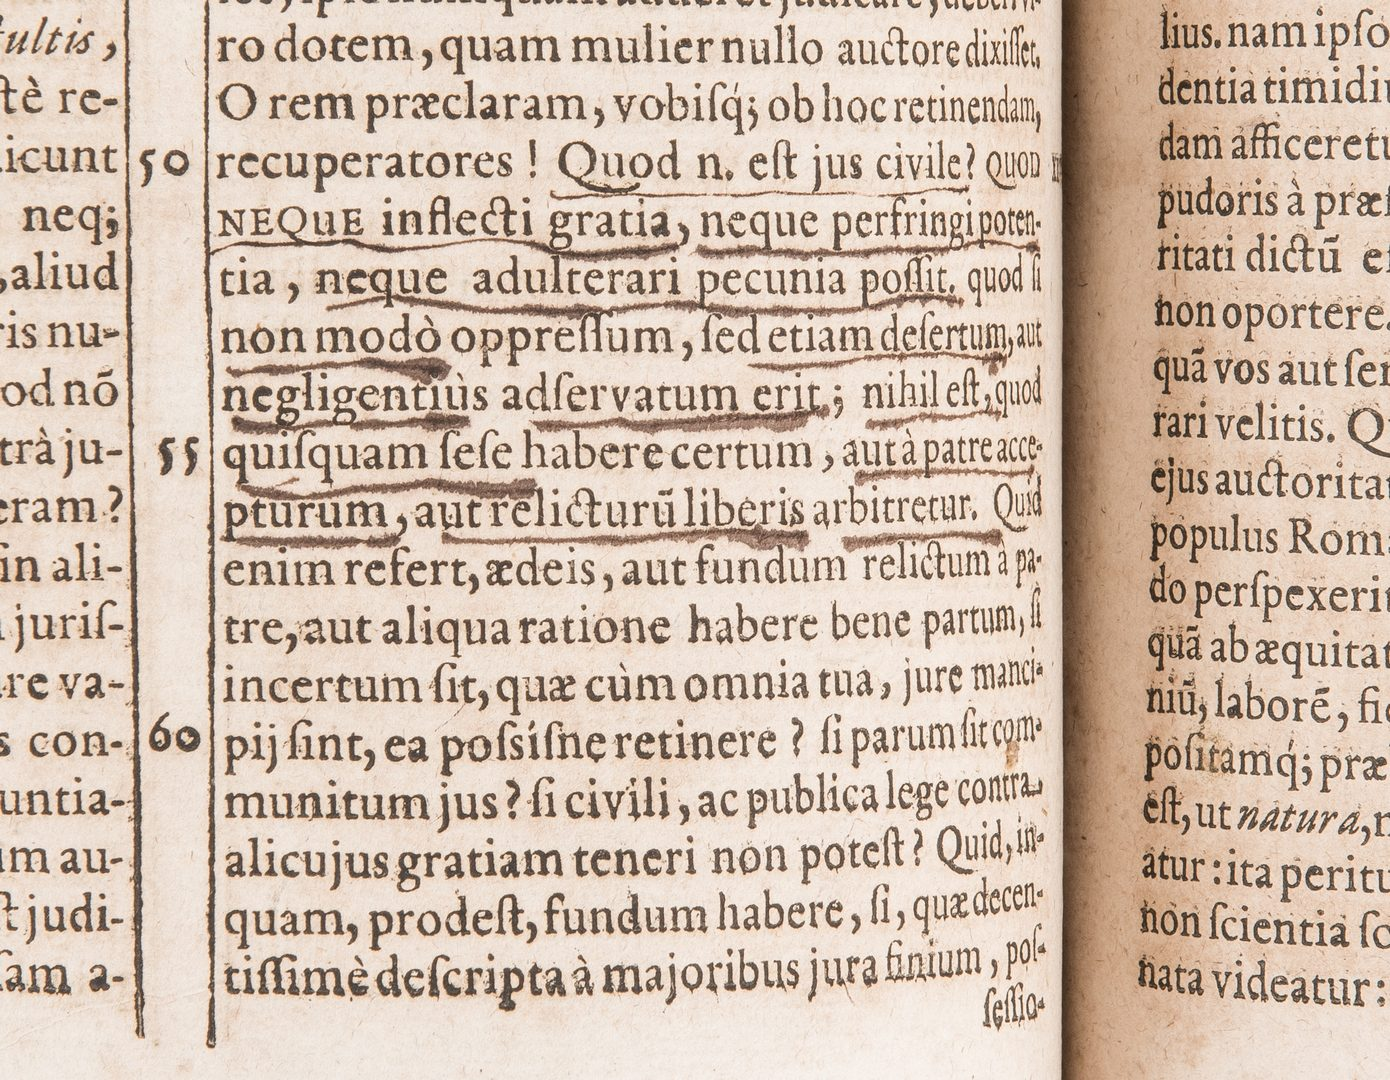 Lot 253: Works of Sabellicus and Cicero, 4 items